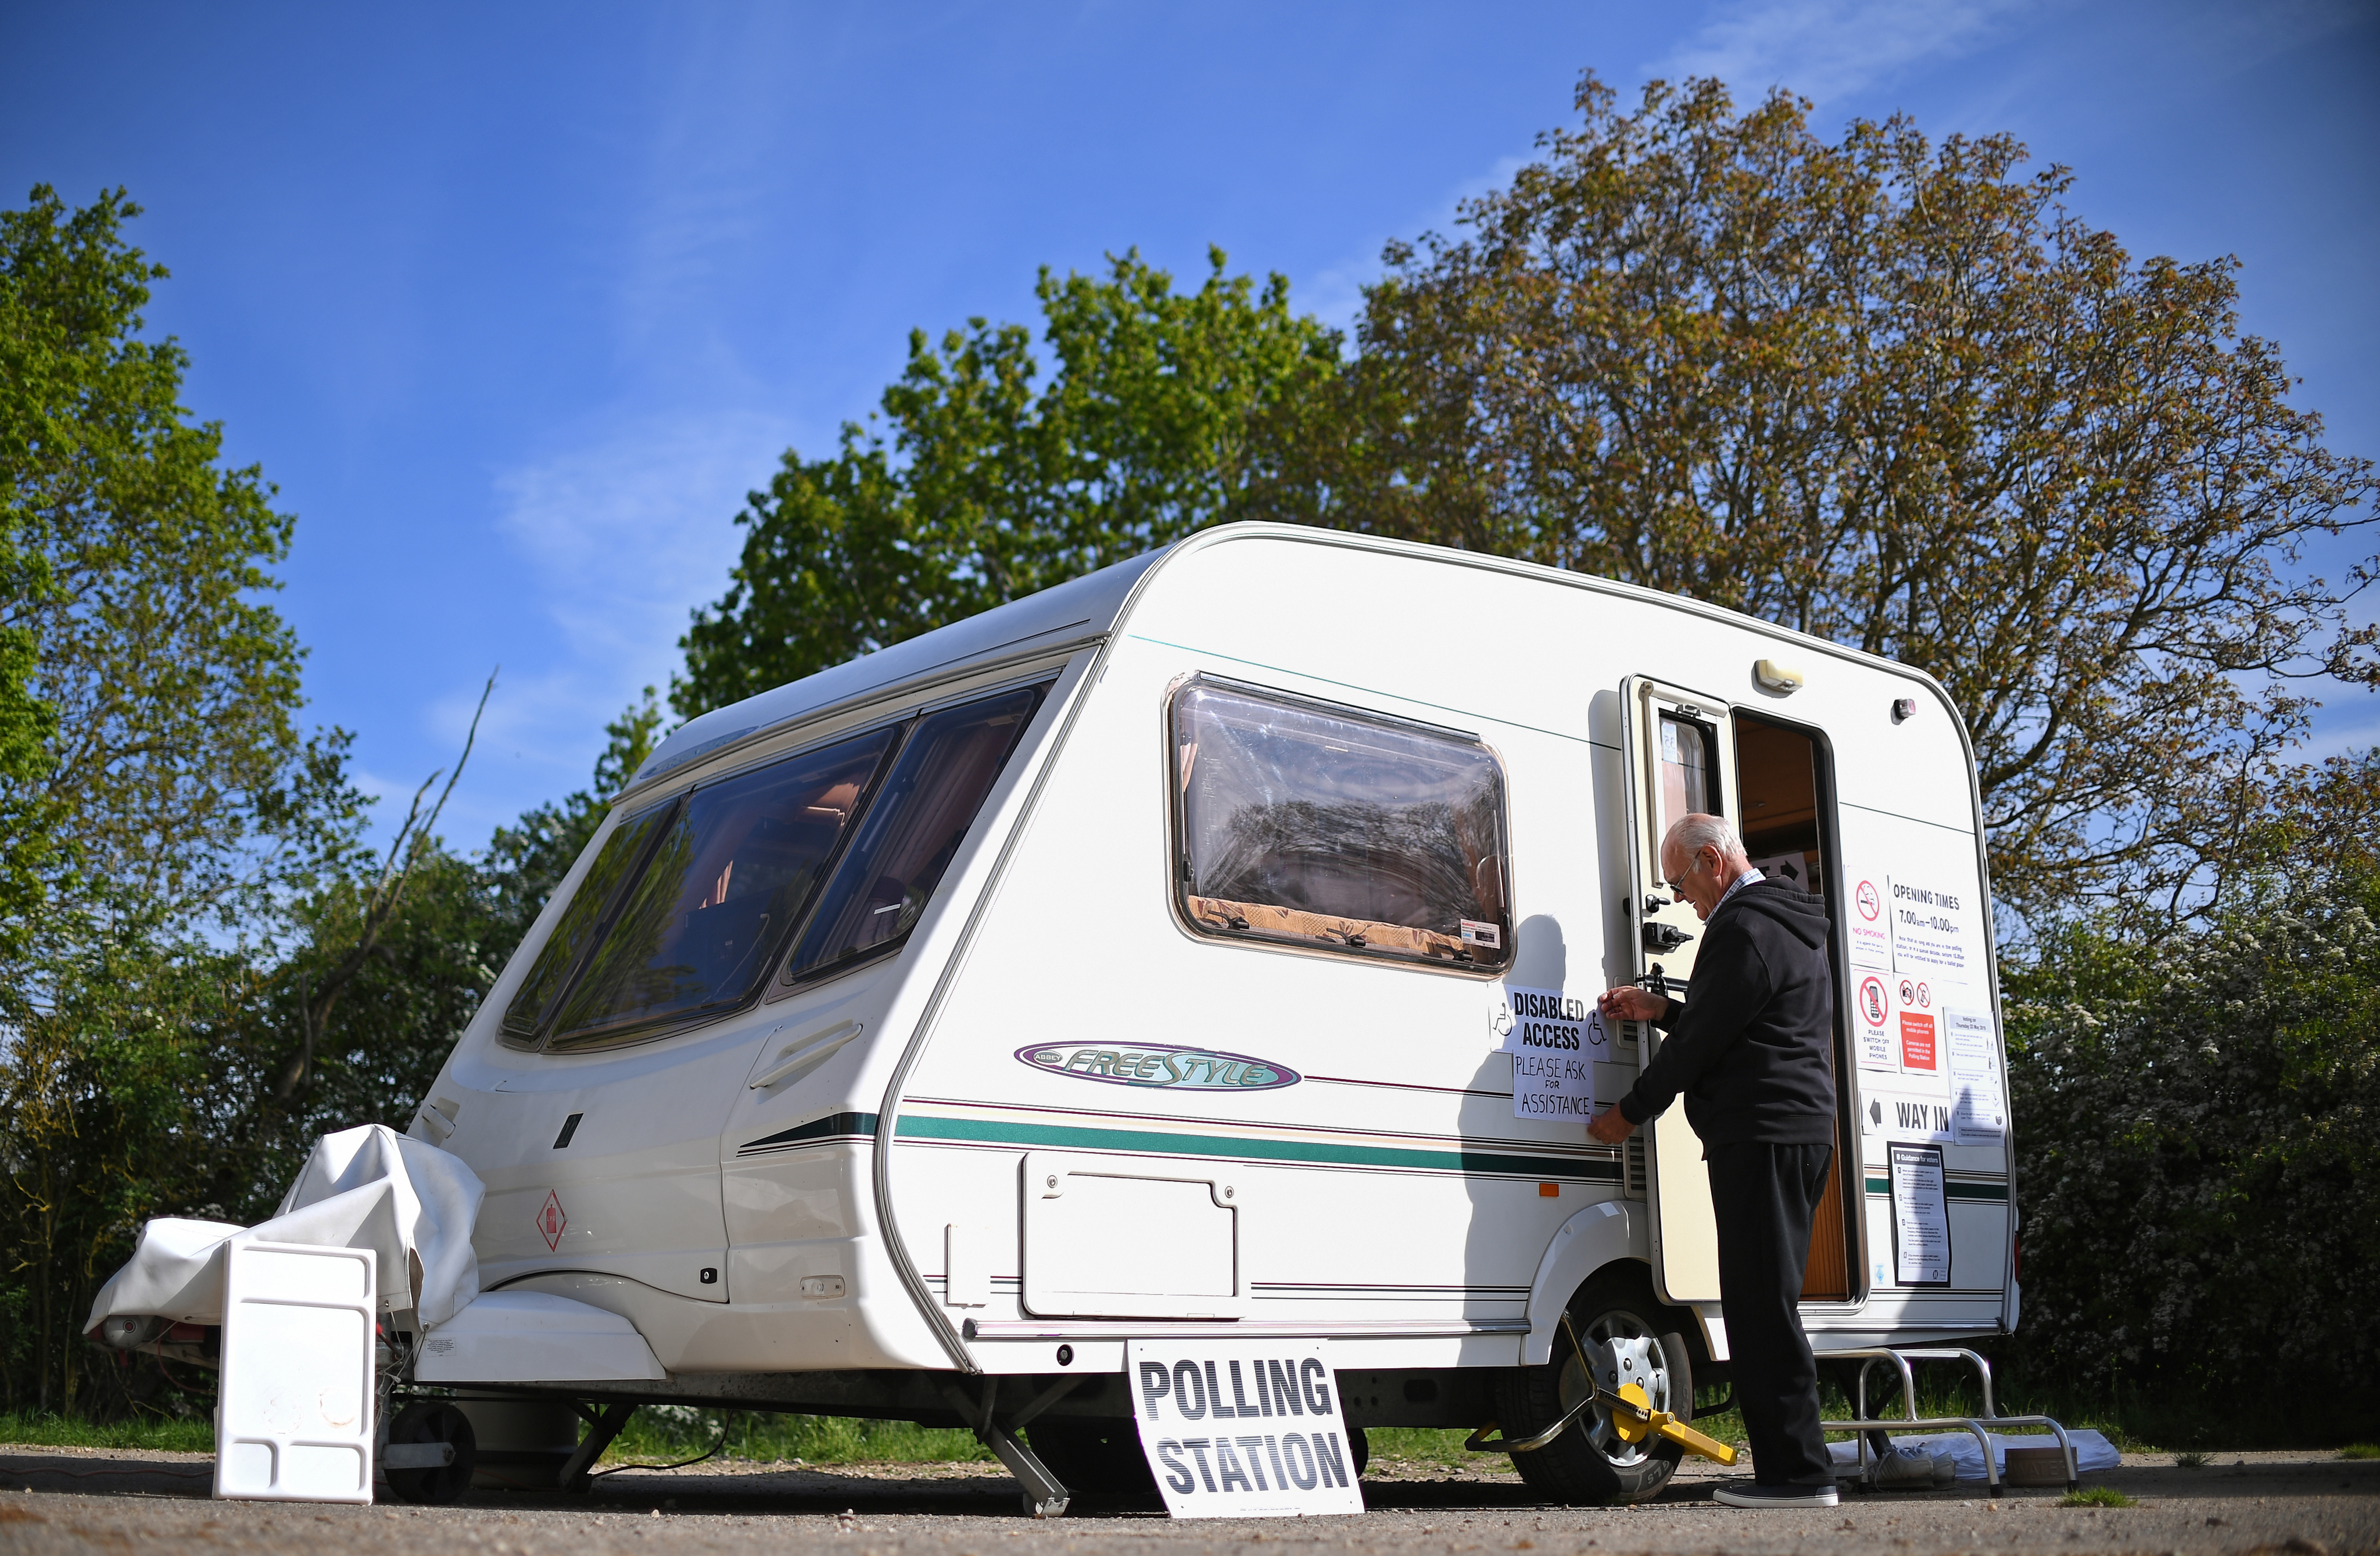 Caravan being used as a polling station for the European elections